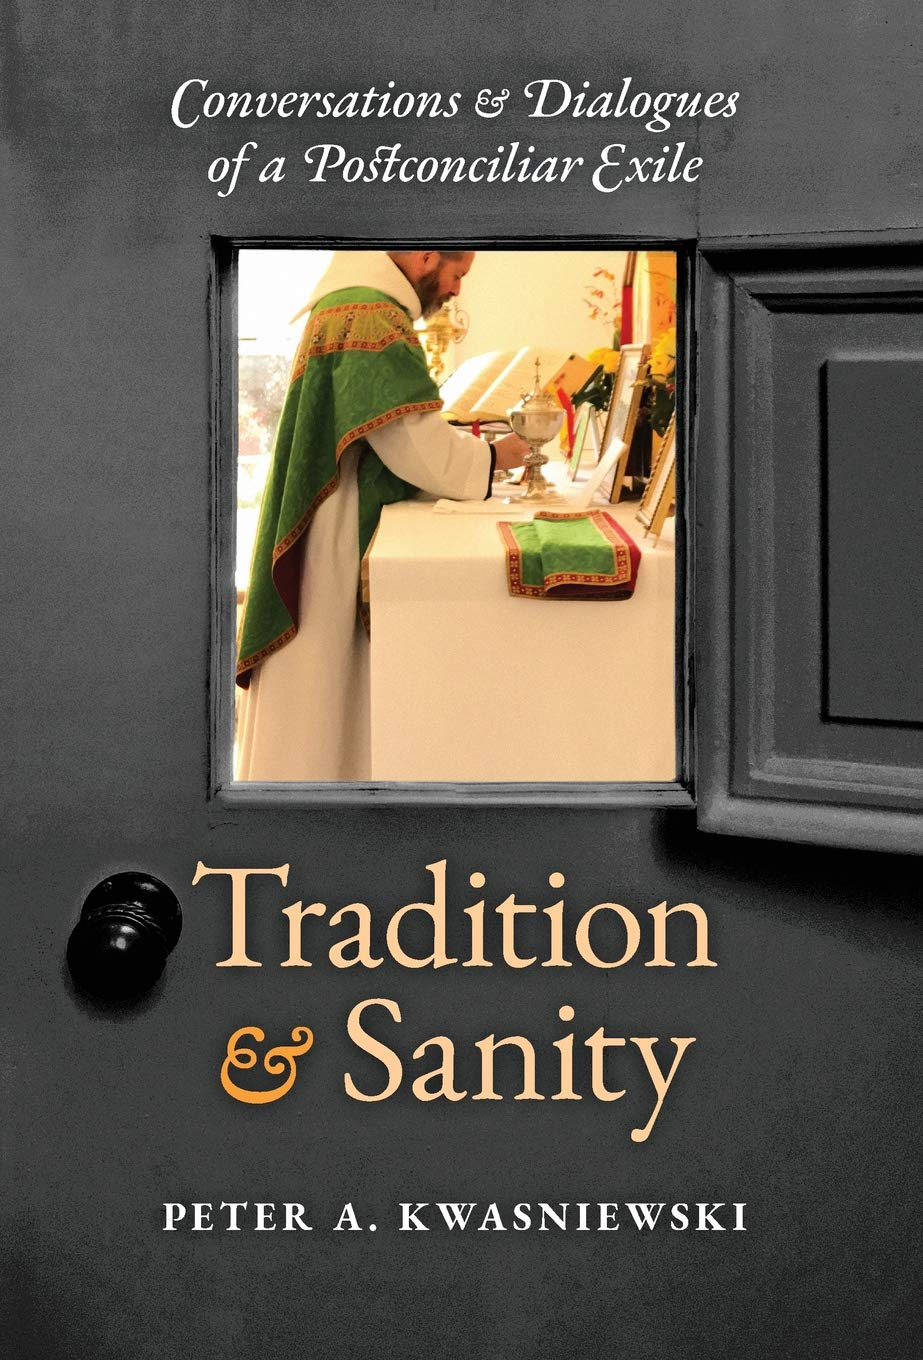 Kwasniewski - Tradition-Sanity